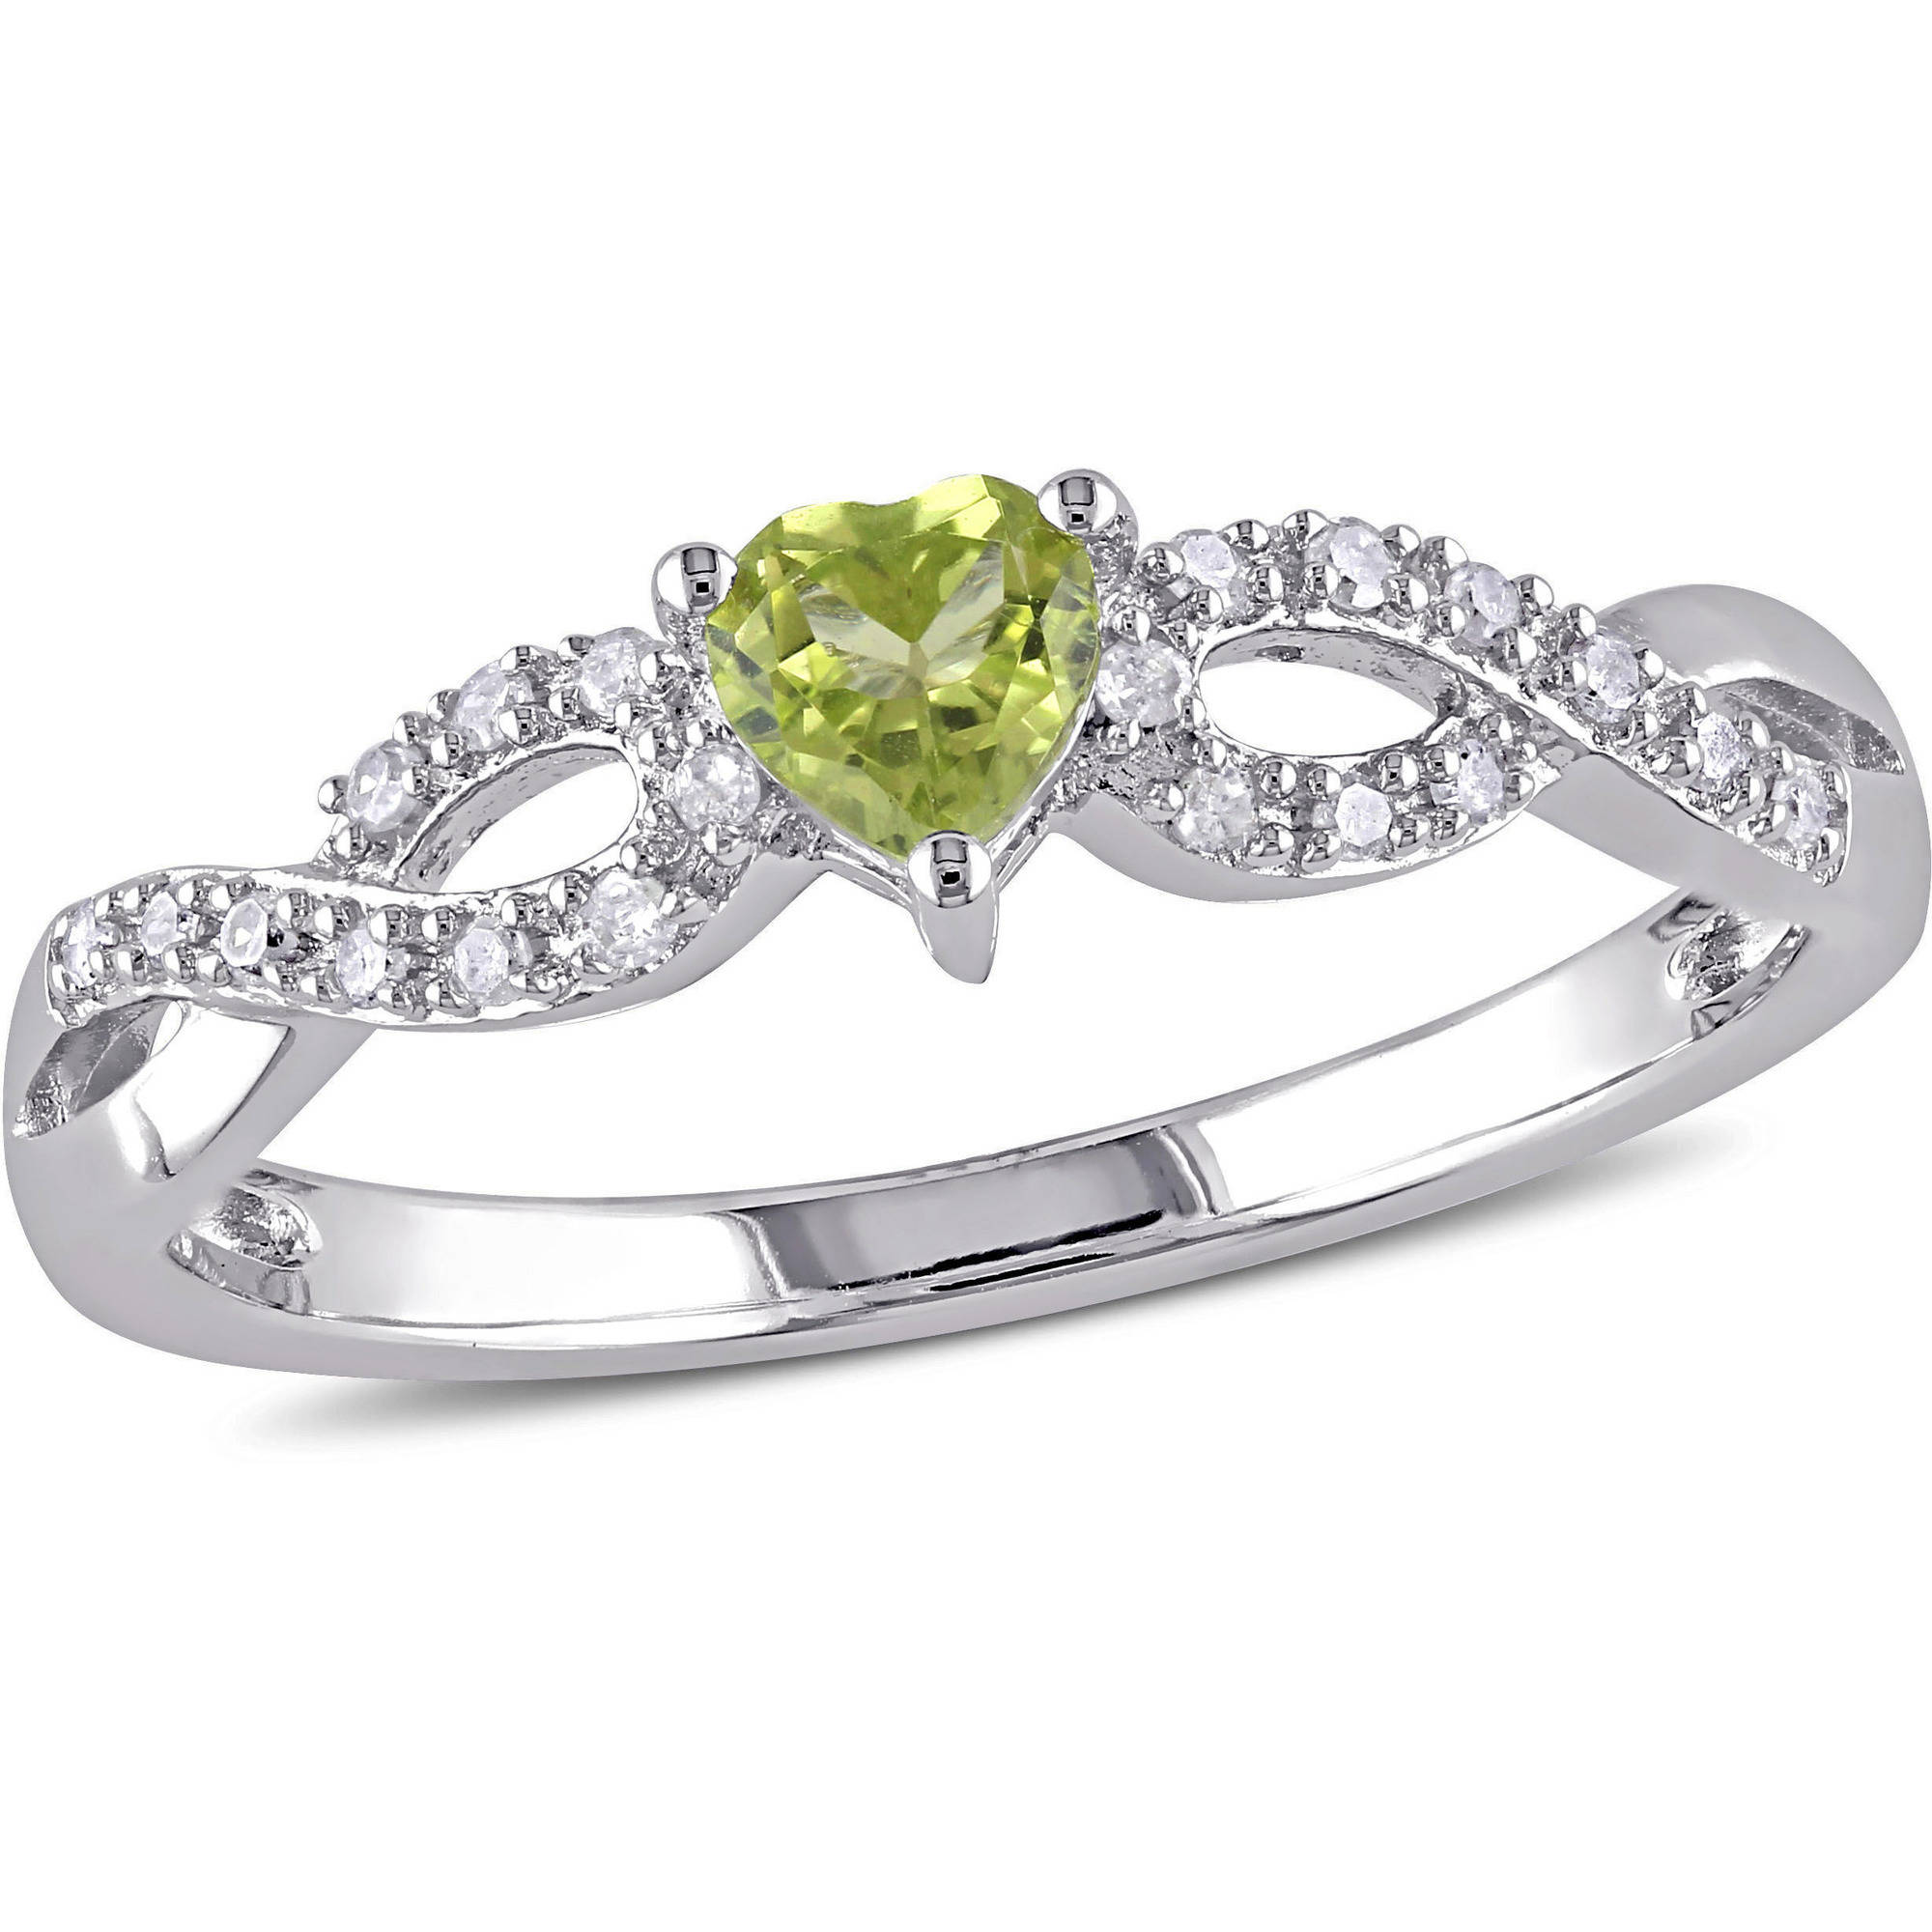 Tangelo 1 3 Carat T.G.W. Peridot and 1 10 Carat T.W. Diamond Sterling Silver Heart Infinity Ring by Delmar Manufacturing LLC